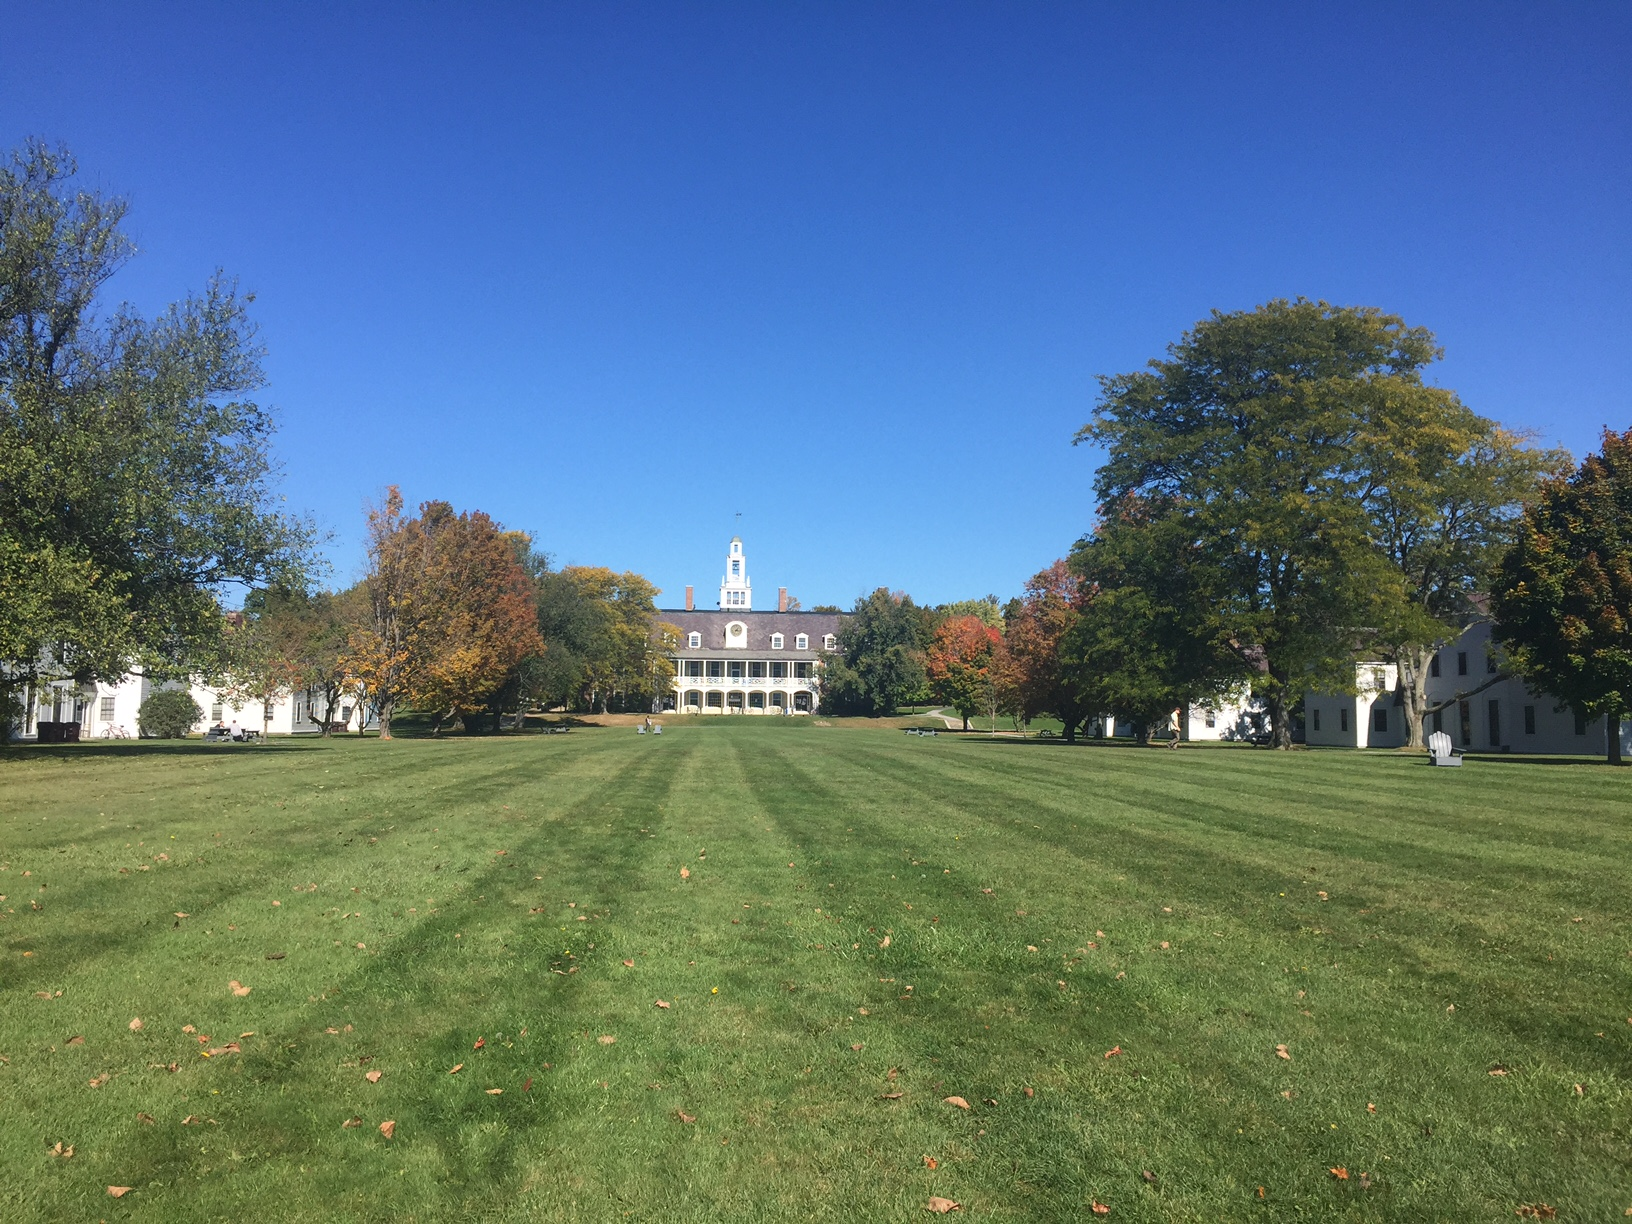 Bennington College campus. Photo by Alec McLane.